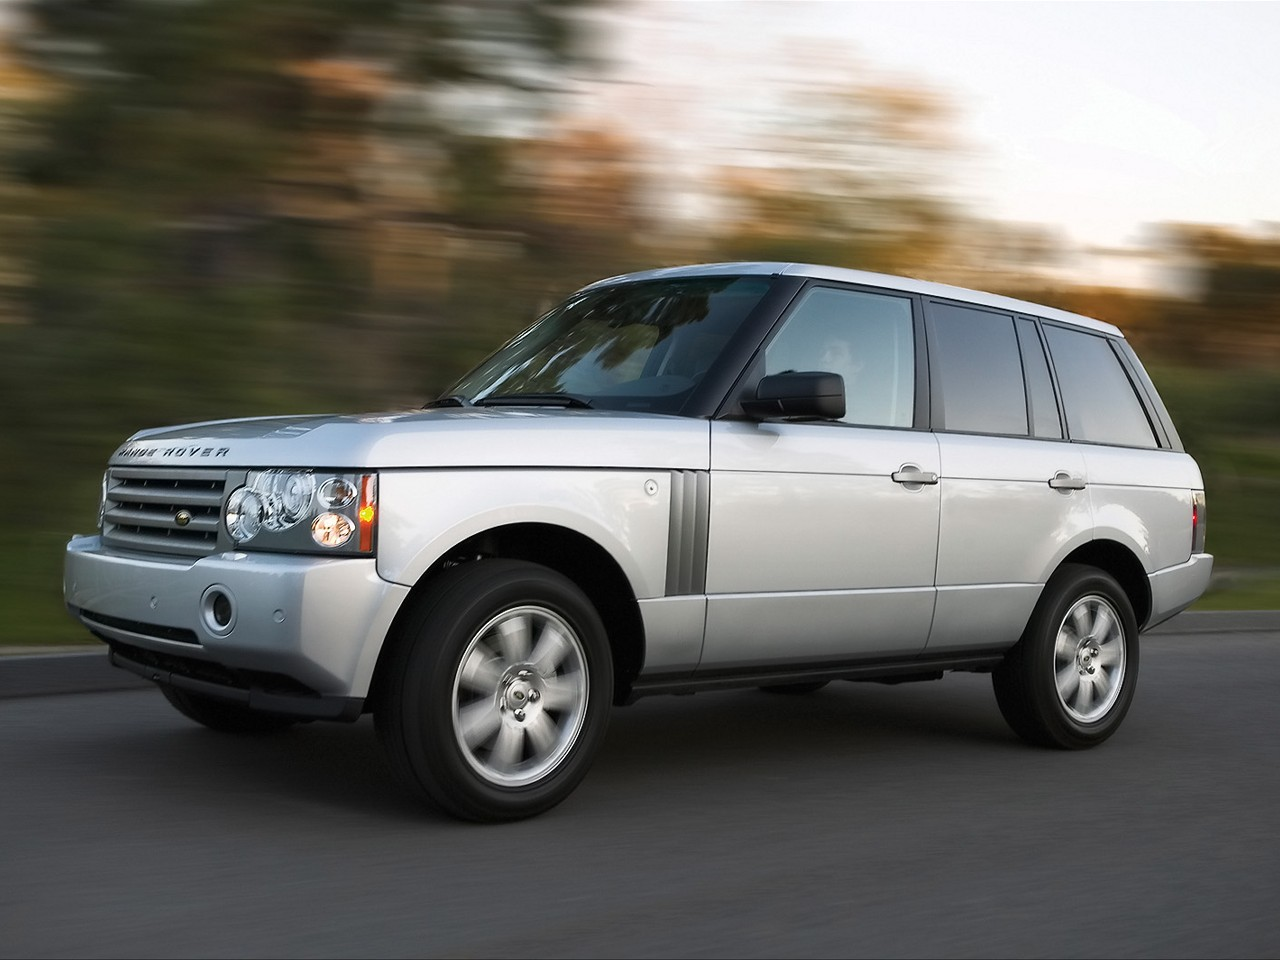 2007 land rover range rover motor desktop. Black Bedroom Furniture Sets. Home Design Ideas